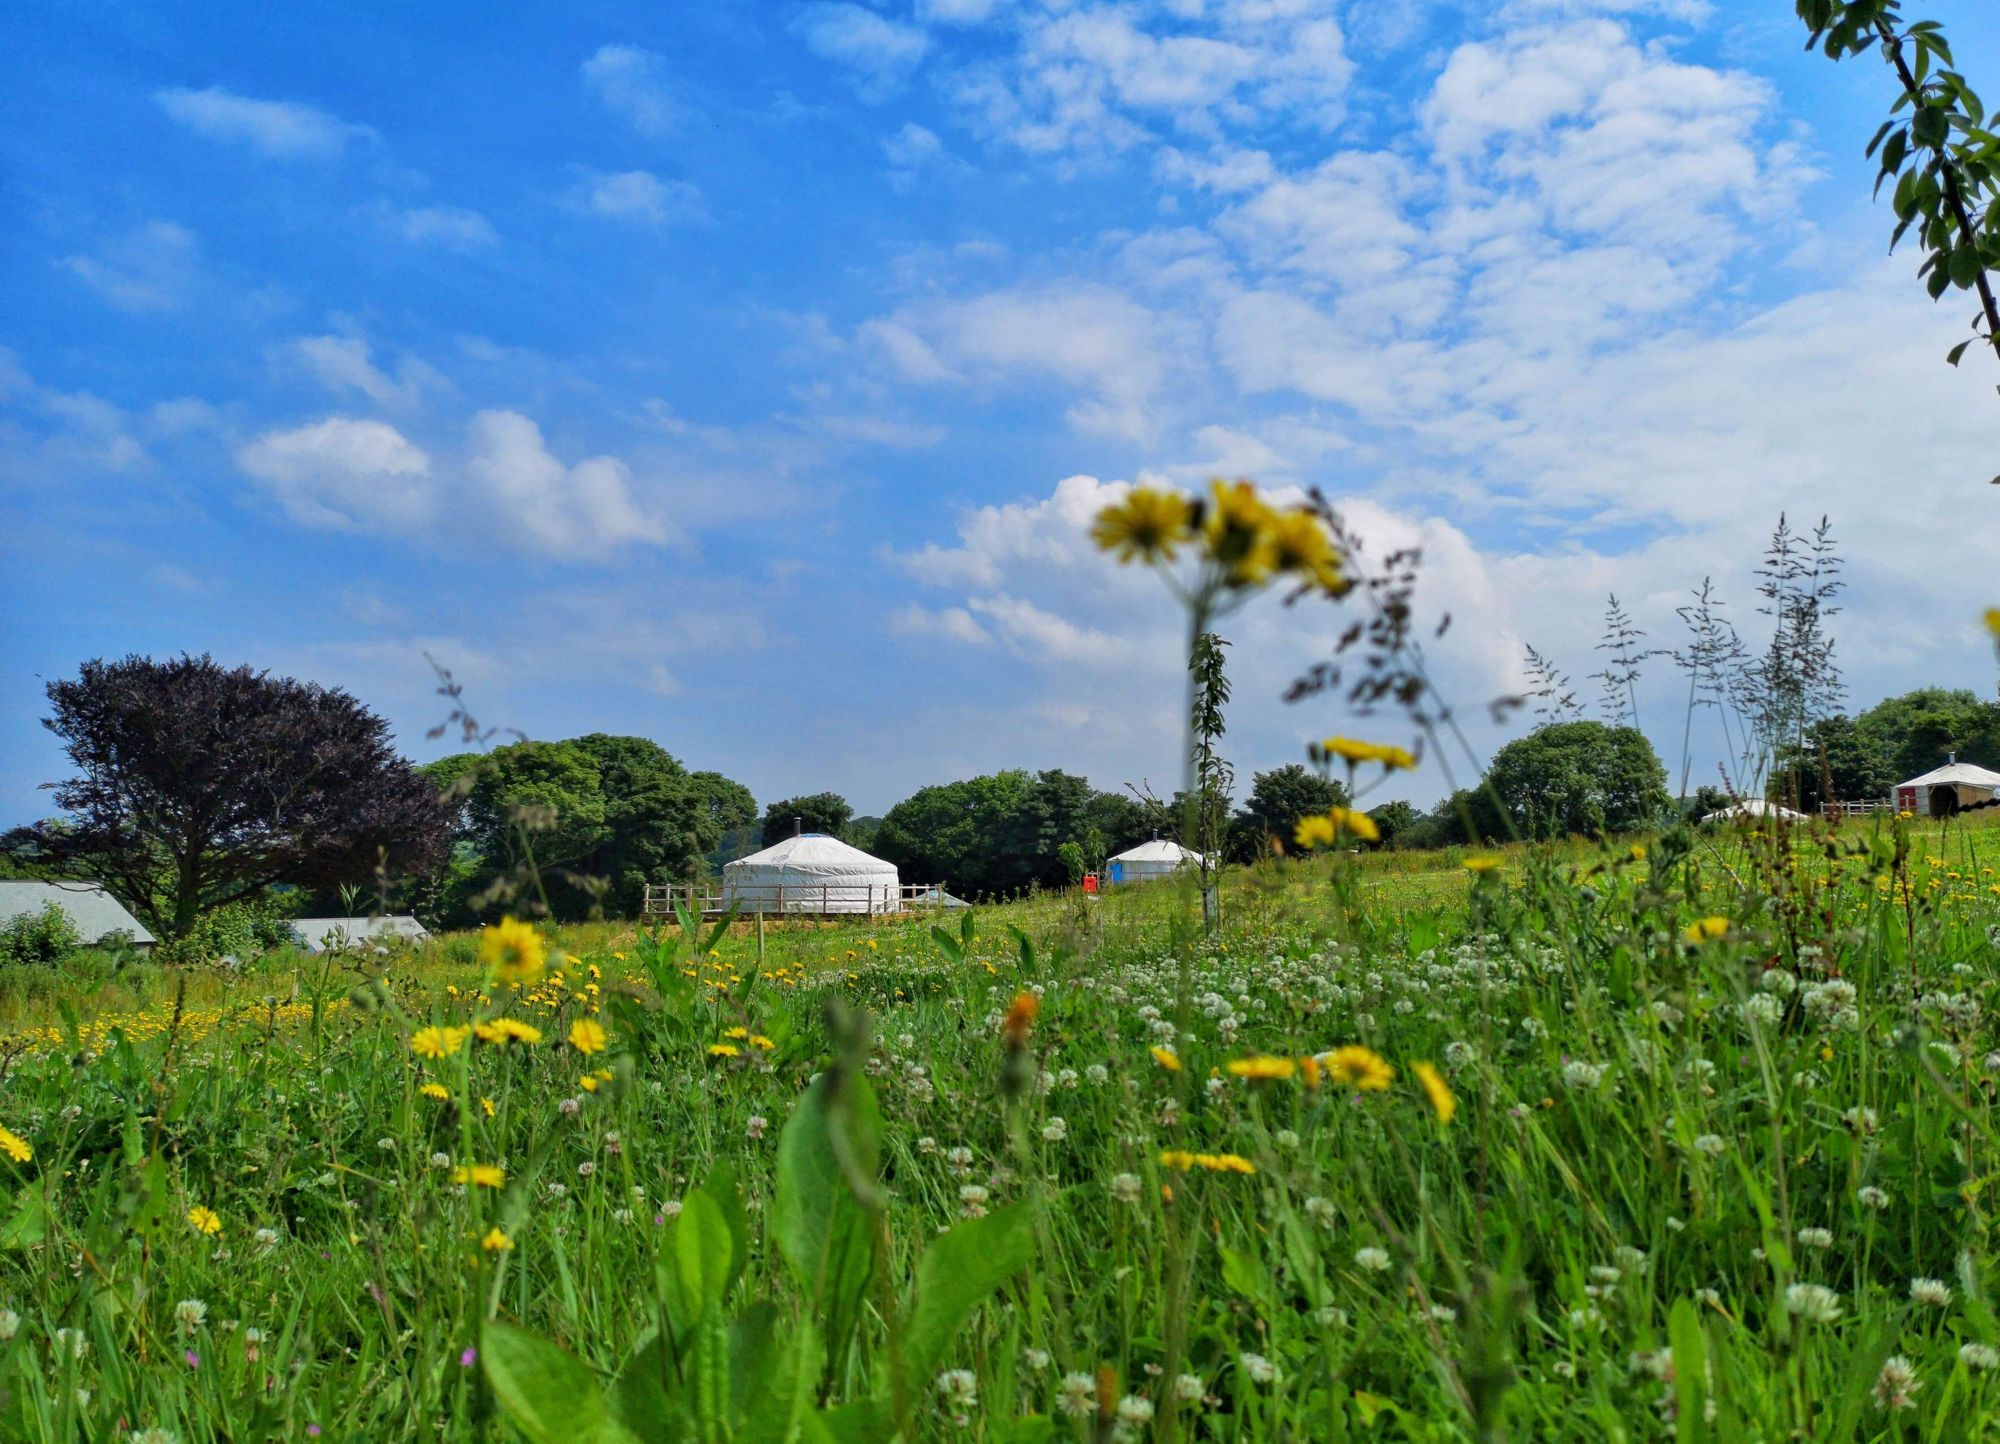 Luxury Campsites and Campgrounds in Europe